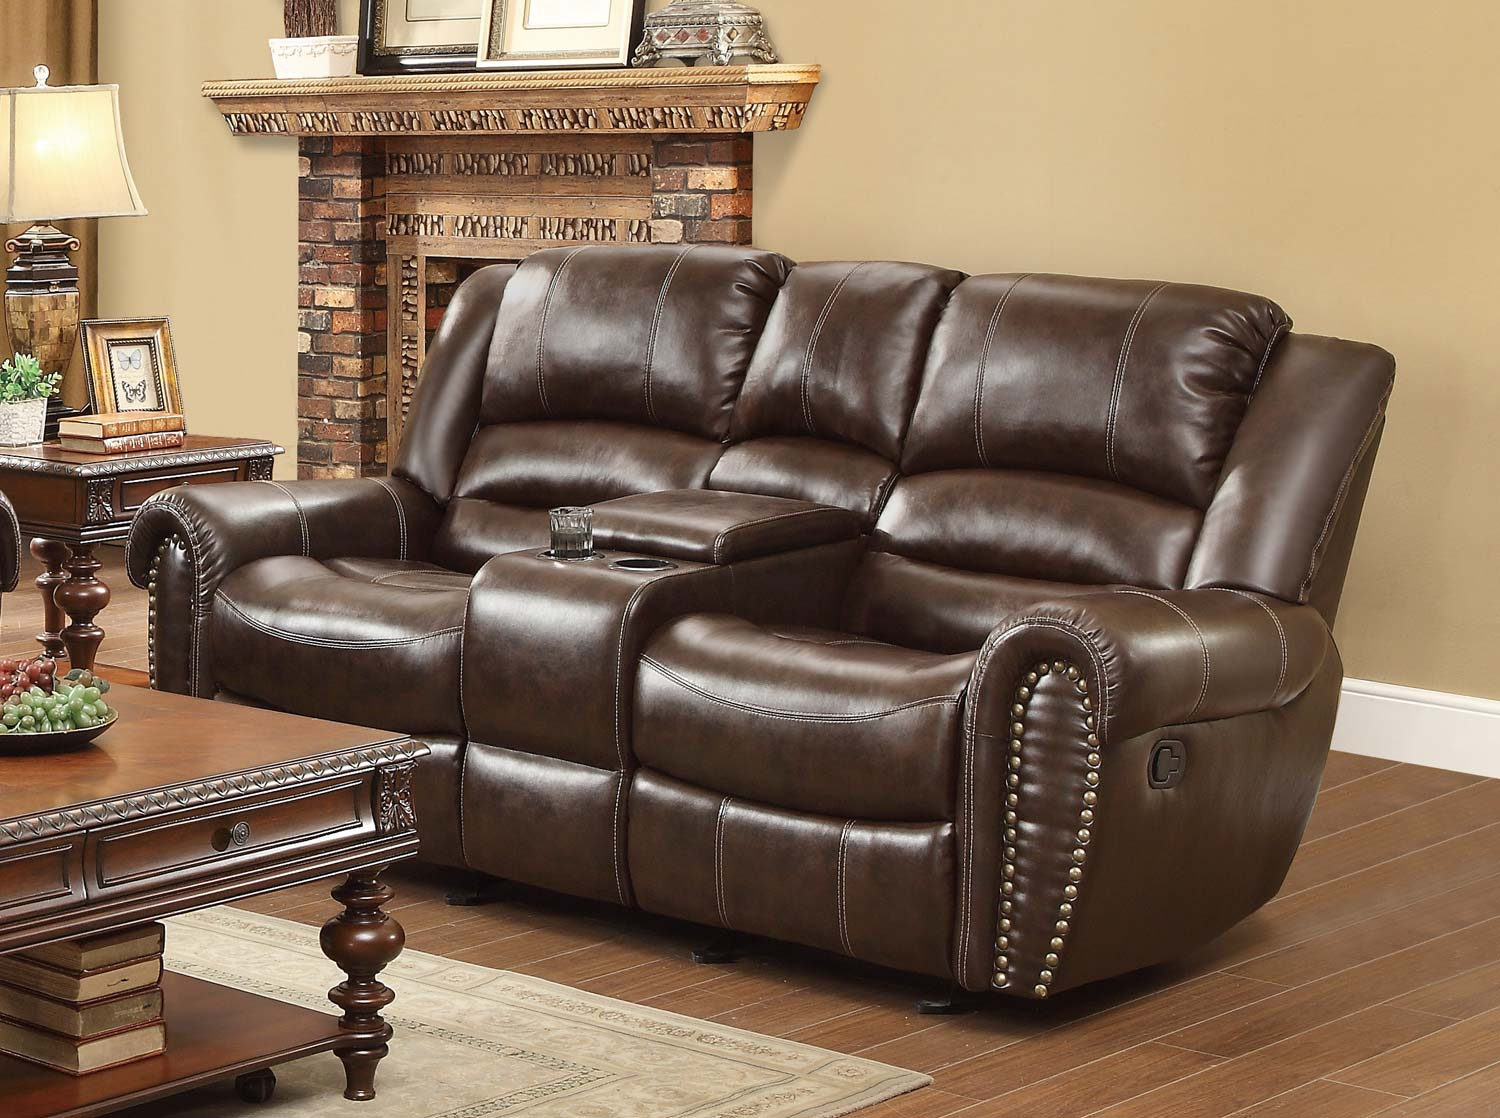 leather reclining loveseat with console homelegance 9668brw-2 traditional brown bonded leather dual reclining  loveseat DTZICPL